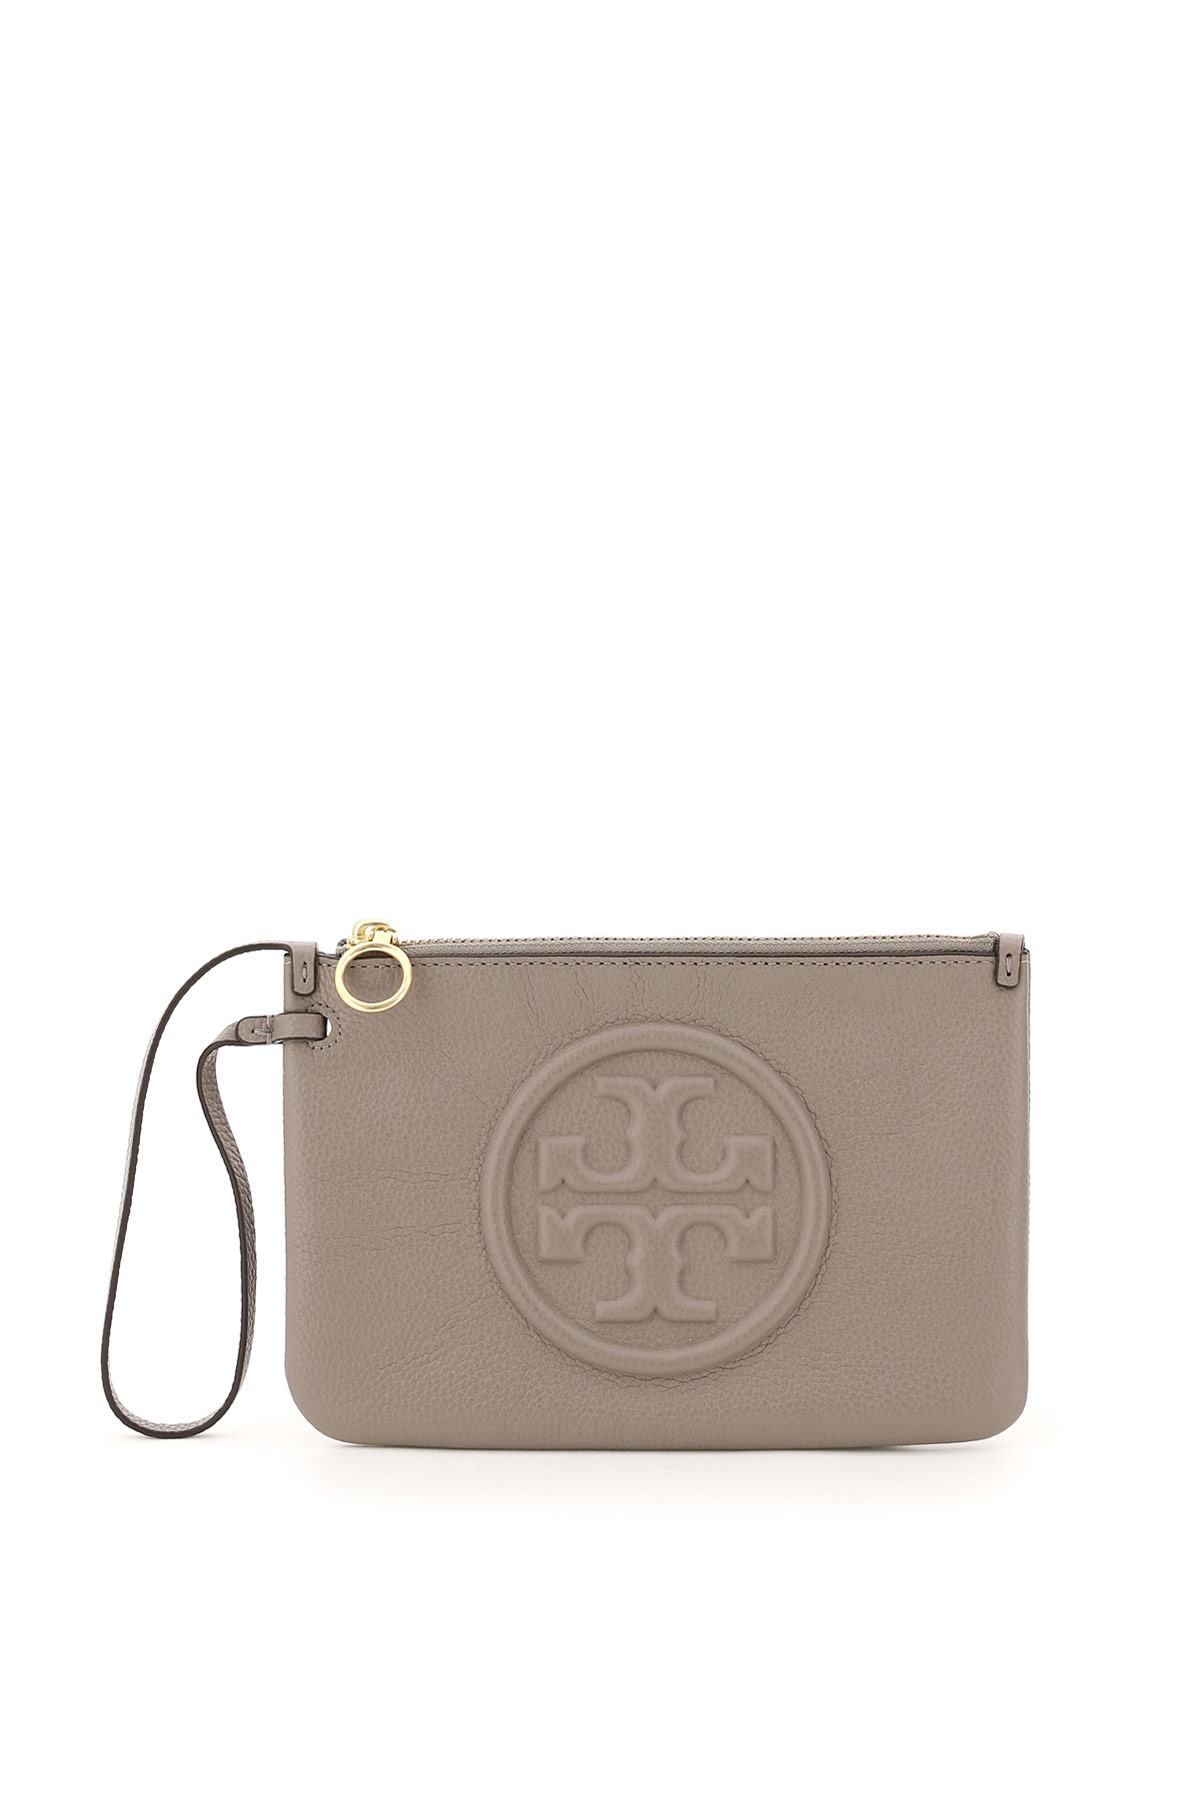 TORY BURCH PERRY BOMBE' POUCH OS Grey, Beige Leather